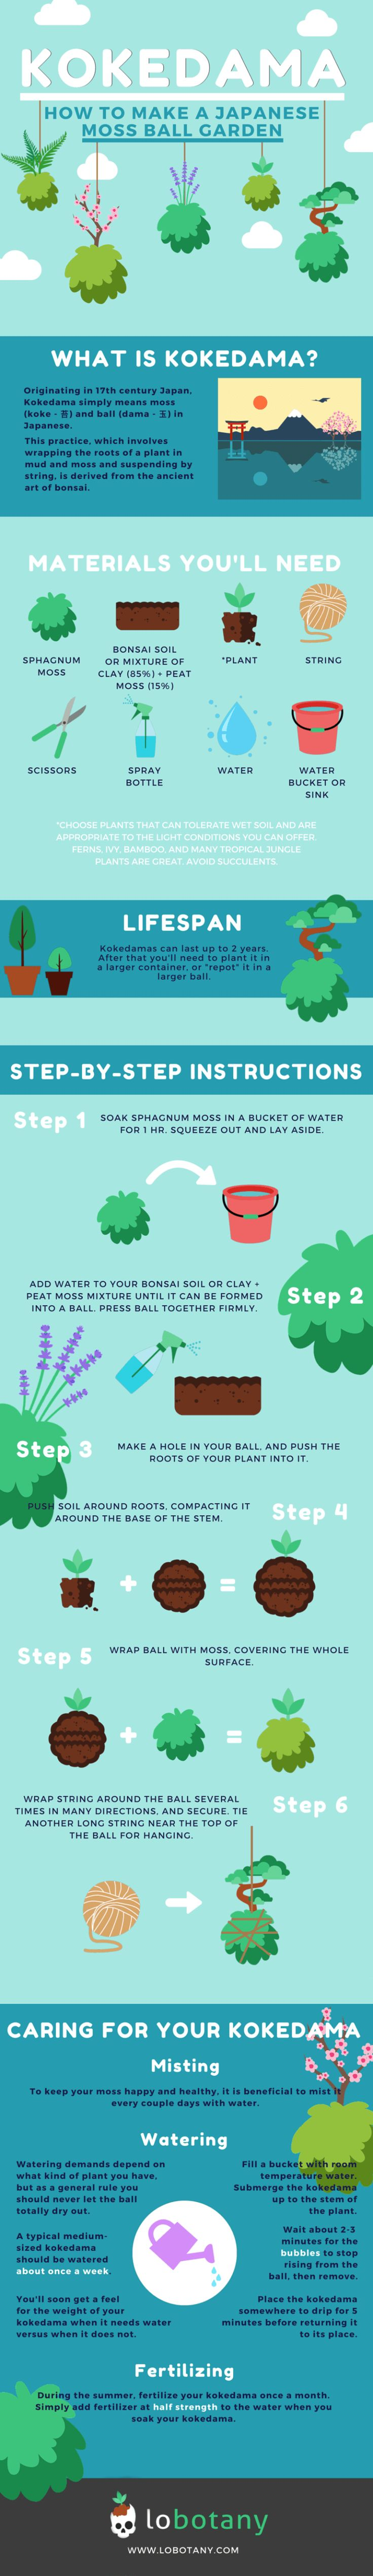 Kokedama: How To Make A Japanese Moss Ball Garden